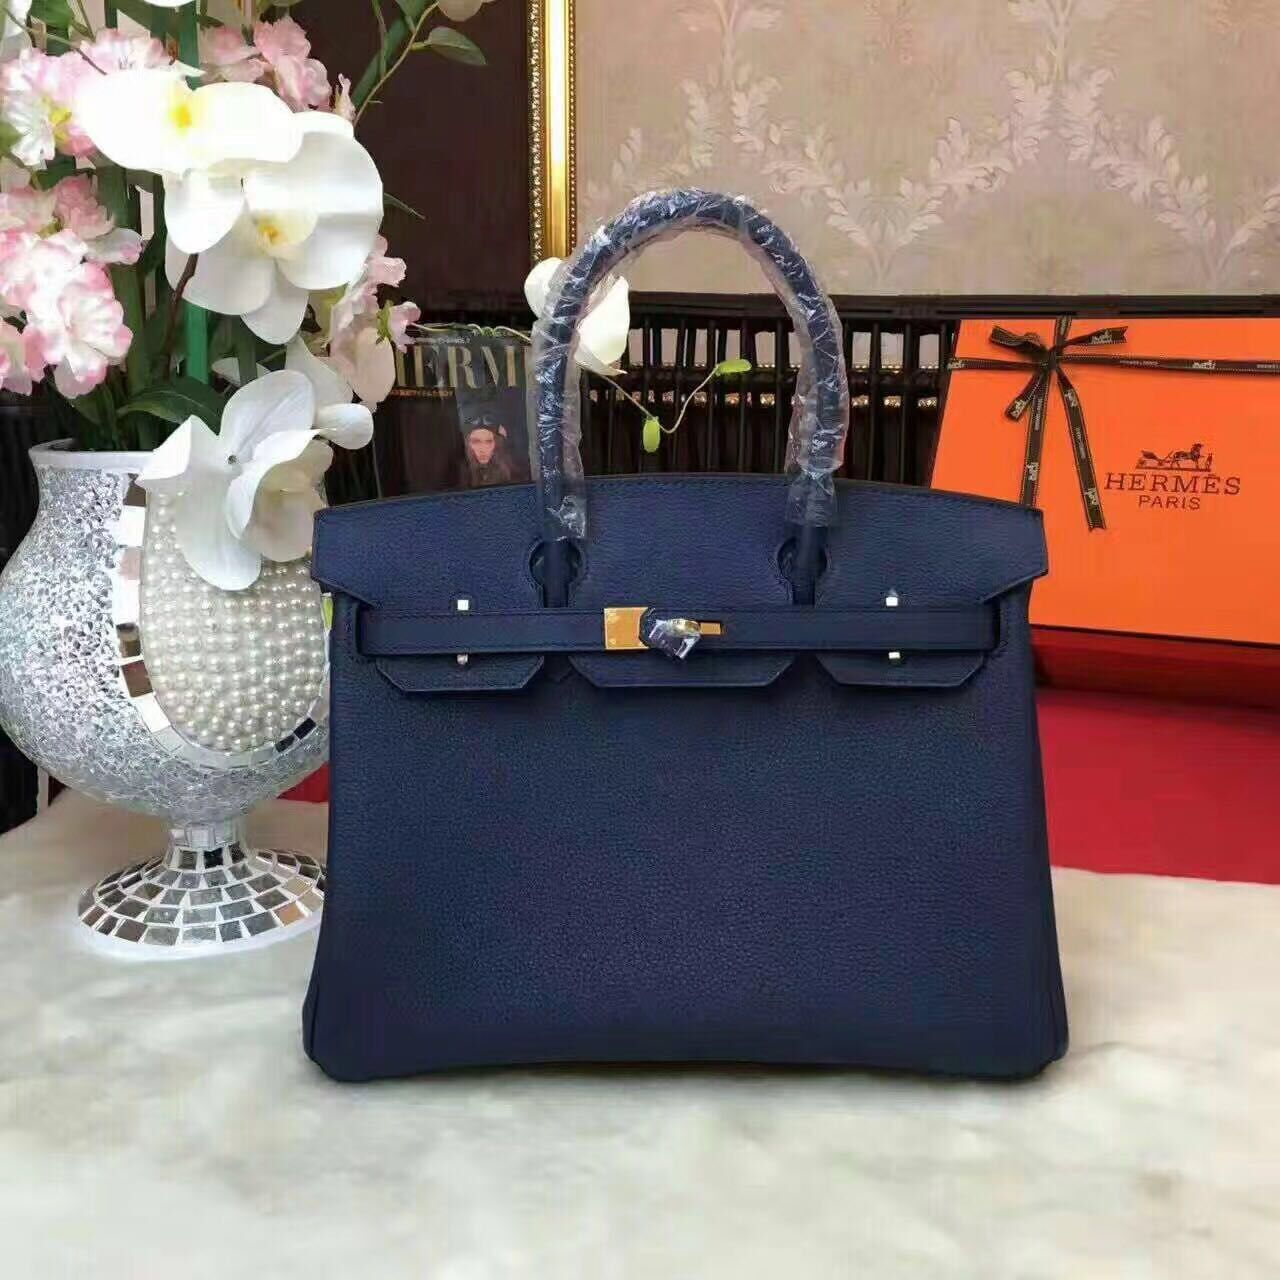 Hermes Birkin Bag Original Leather 17825 Blue